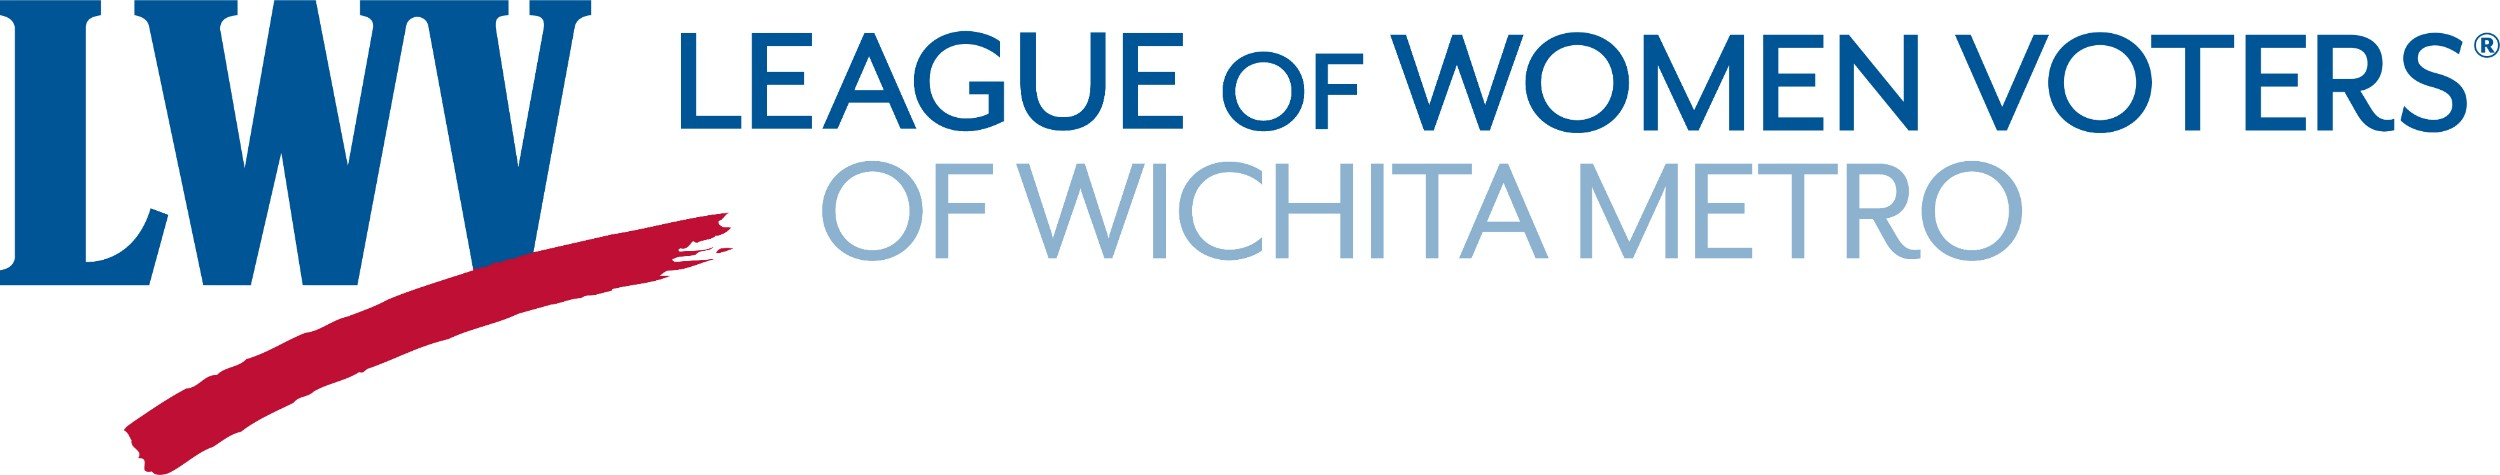 League of Women Voters of Wichita Metro